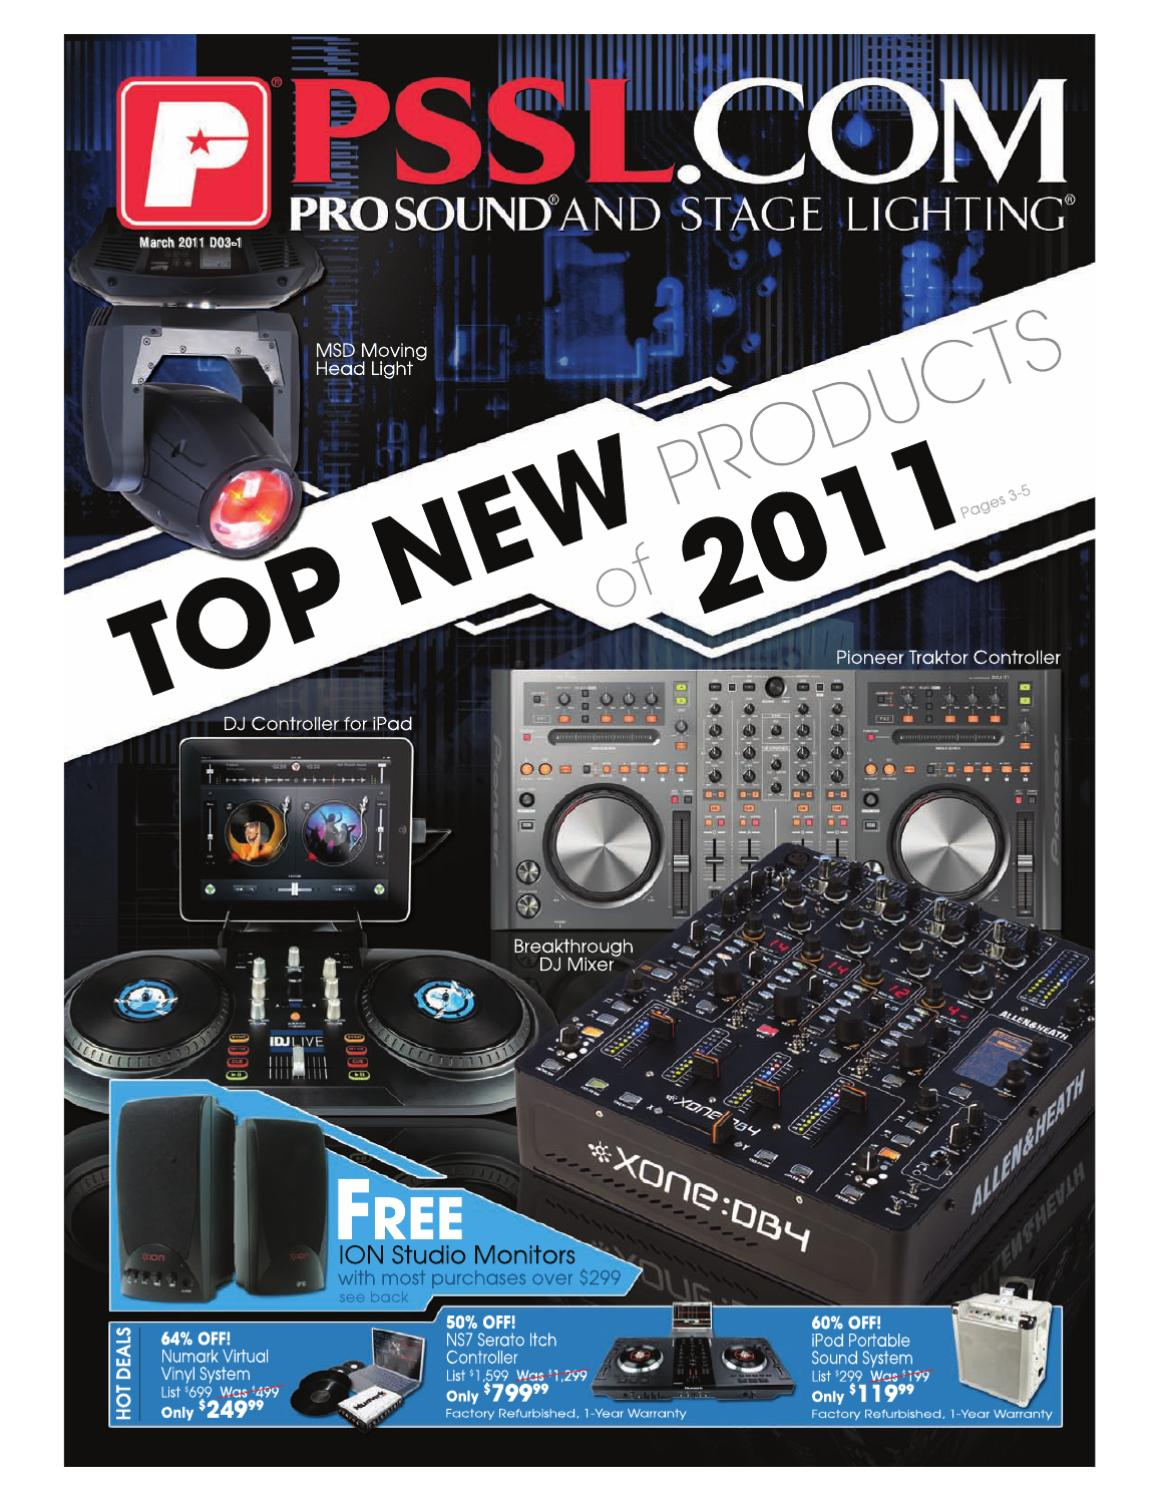 2011-03-March by PSSL com - ProSound & Stage Lighting - issuu